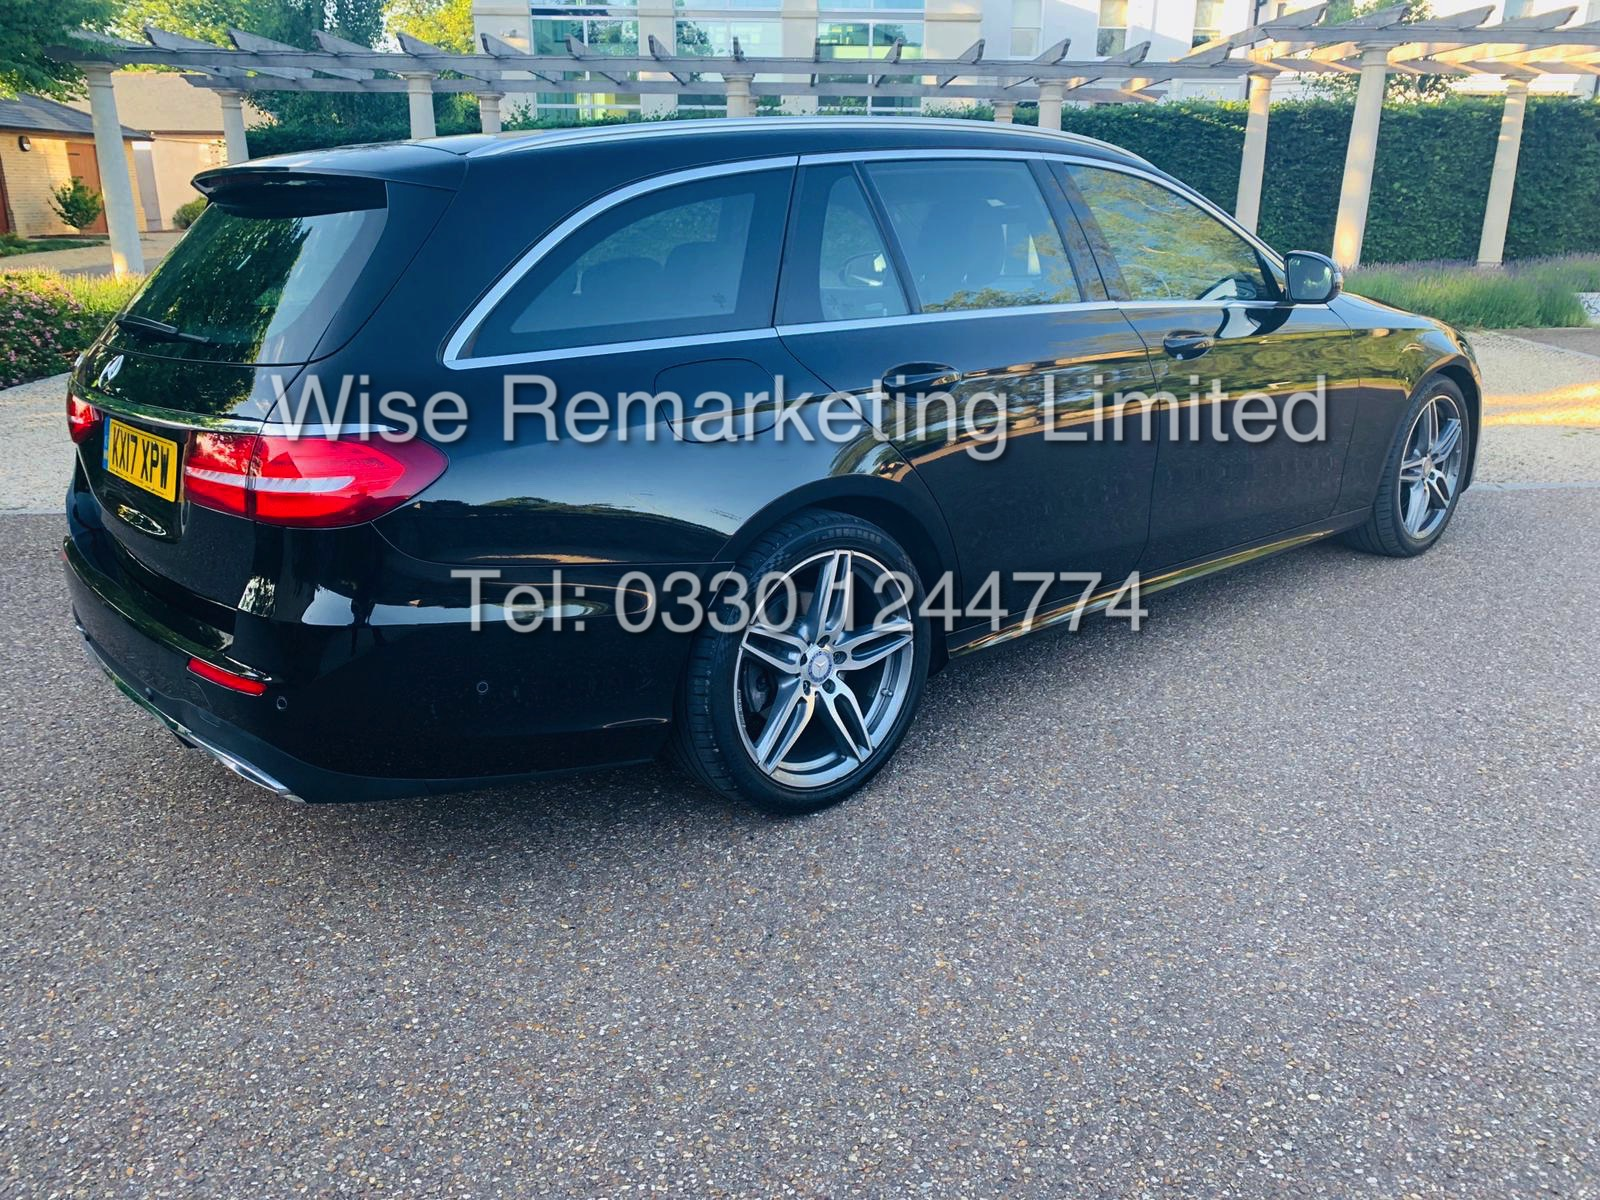 MERCEDES E CLASS ESTATE E220D AMG LINE 2017 / 9G -TRONIC / *LOW MILES* / 1 OWNER - Image 6 of 42